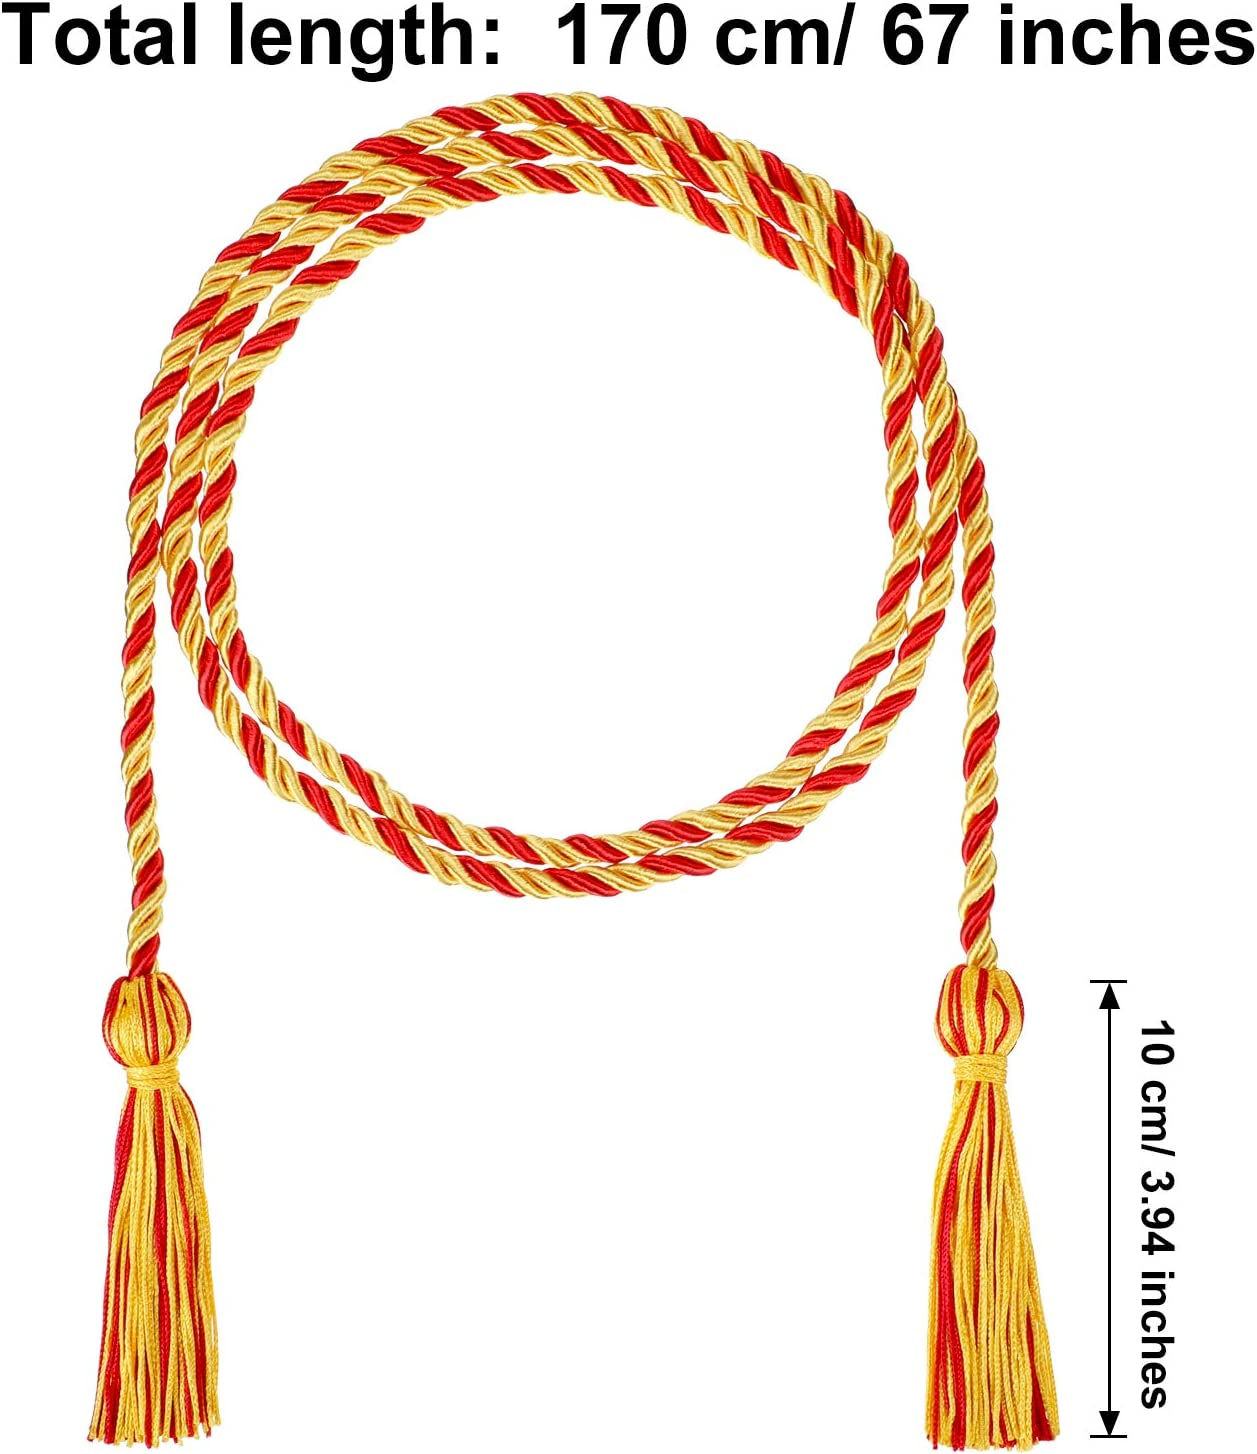 2 Pieces Graduation Cords Polyester Yarn Honor Cord with Tassel for Graduation Students Gold and Gold with Red